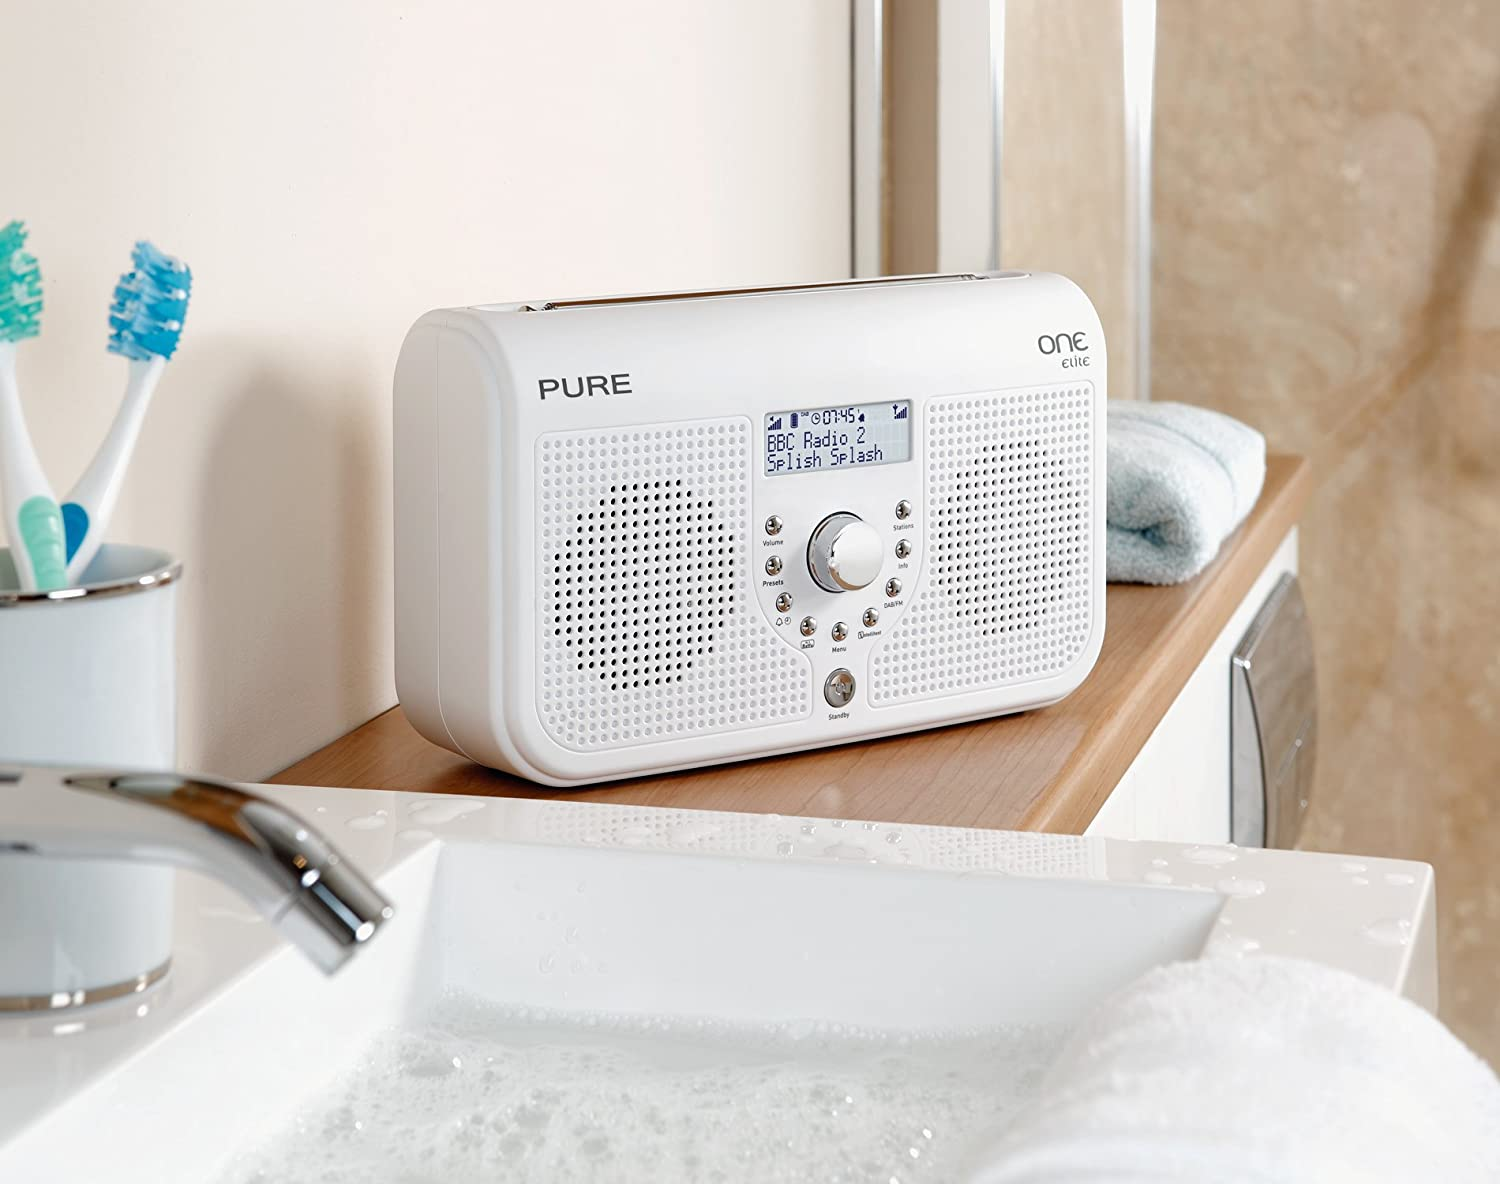 Pure ONE Elite Tragbares Stereo Radio (DAB/DAB+/ UKW Tuner, Uhr Mit  Weckfunktion, Mini USB 2.0) Weiß: Amazon.de: Audio U0026 HiFi